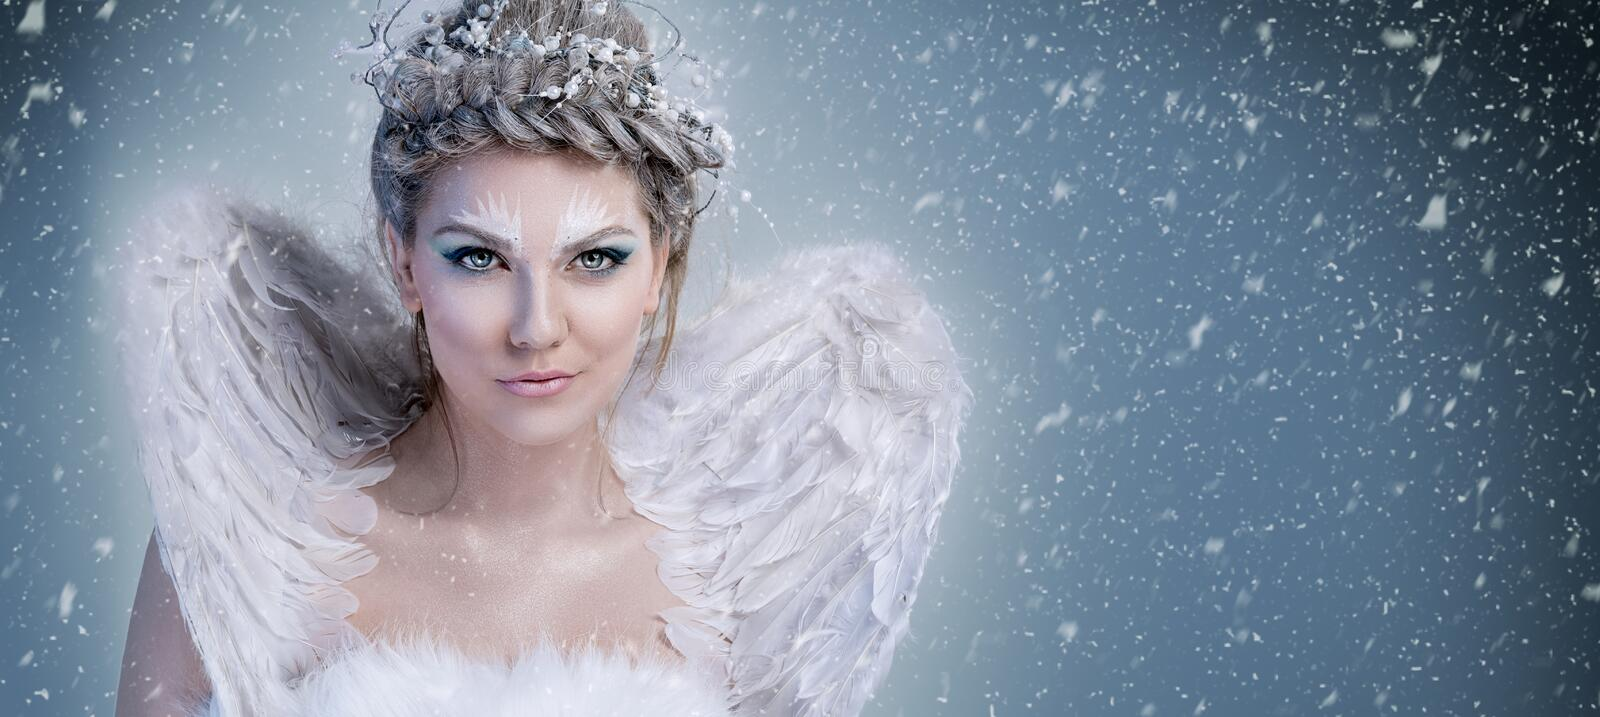 Snow queen - winter fairy with wings royalty free stock photography